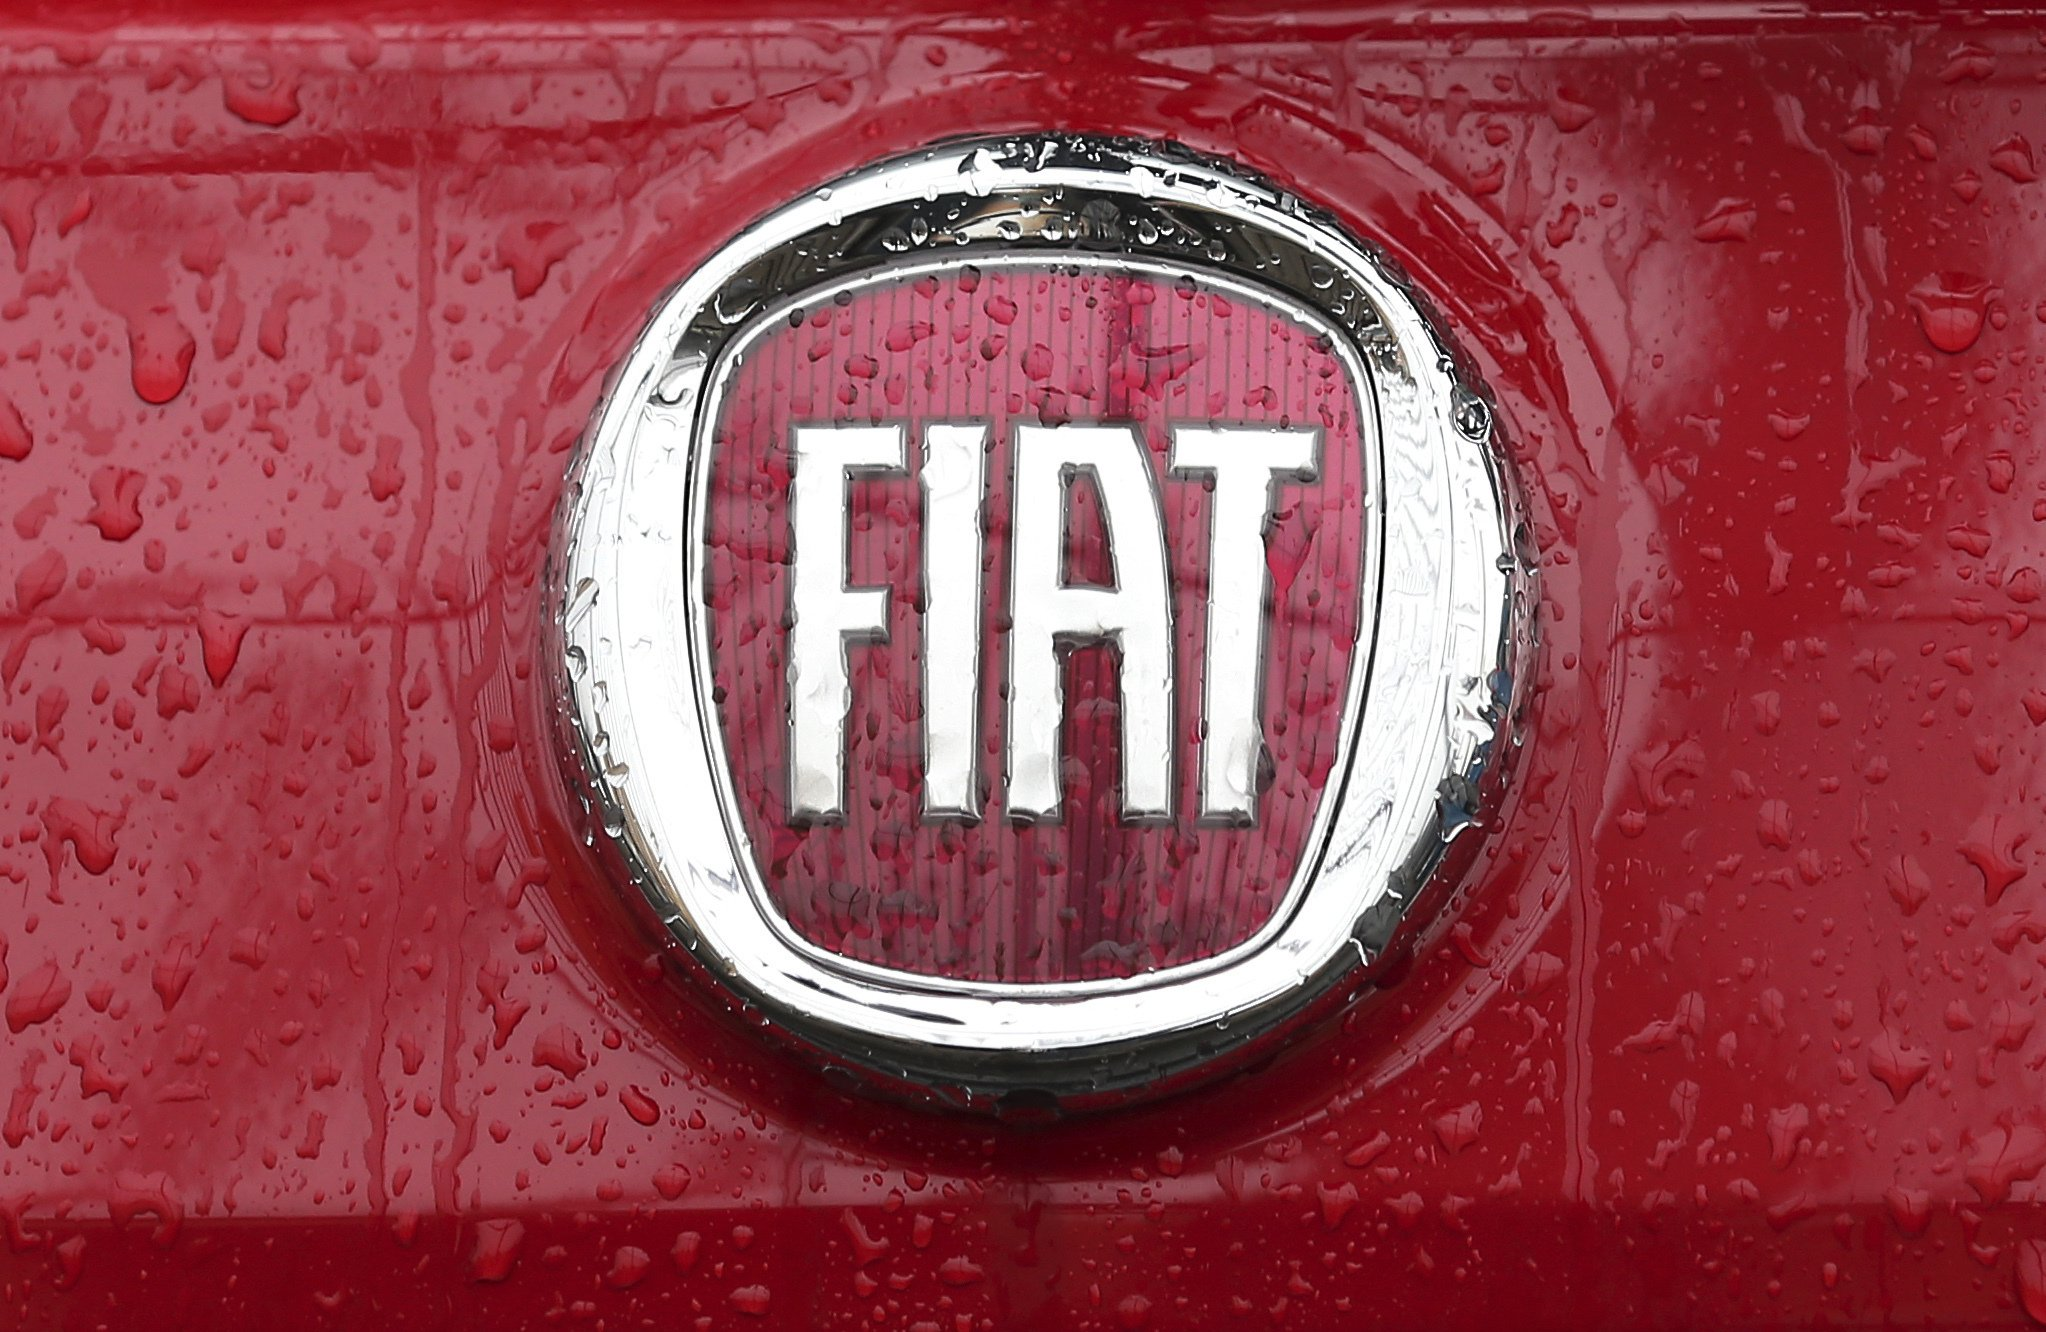 Fiat Chrysler to pay $40M fine for overstating sales numbers